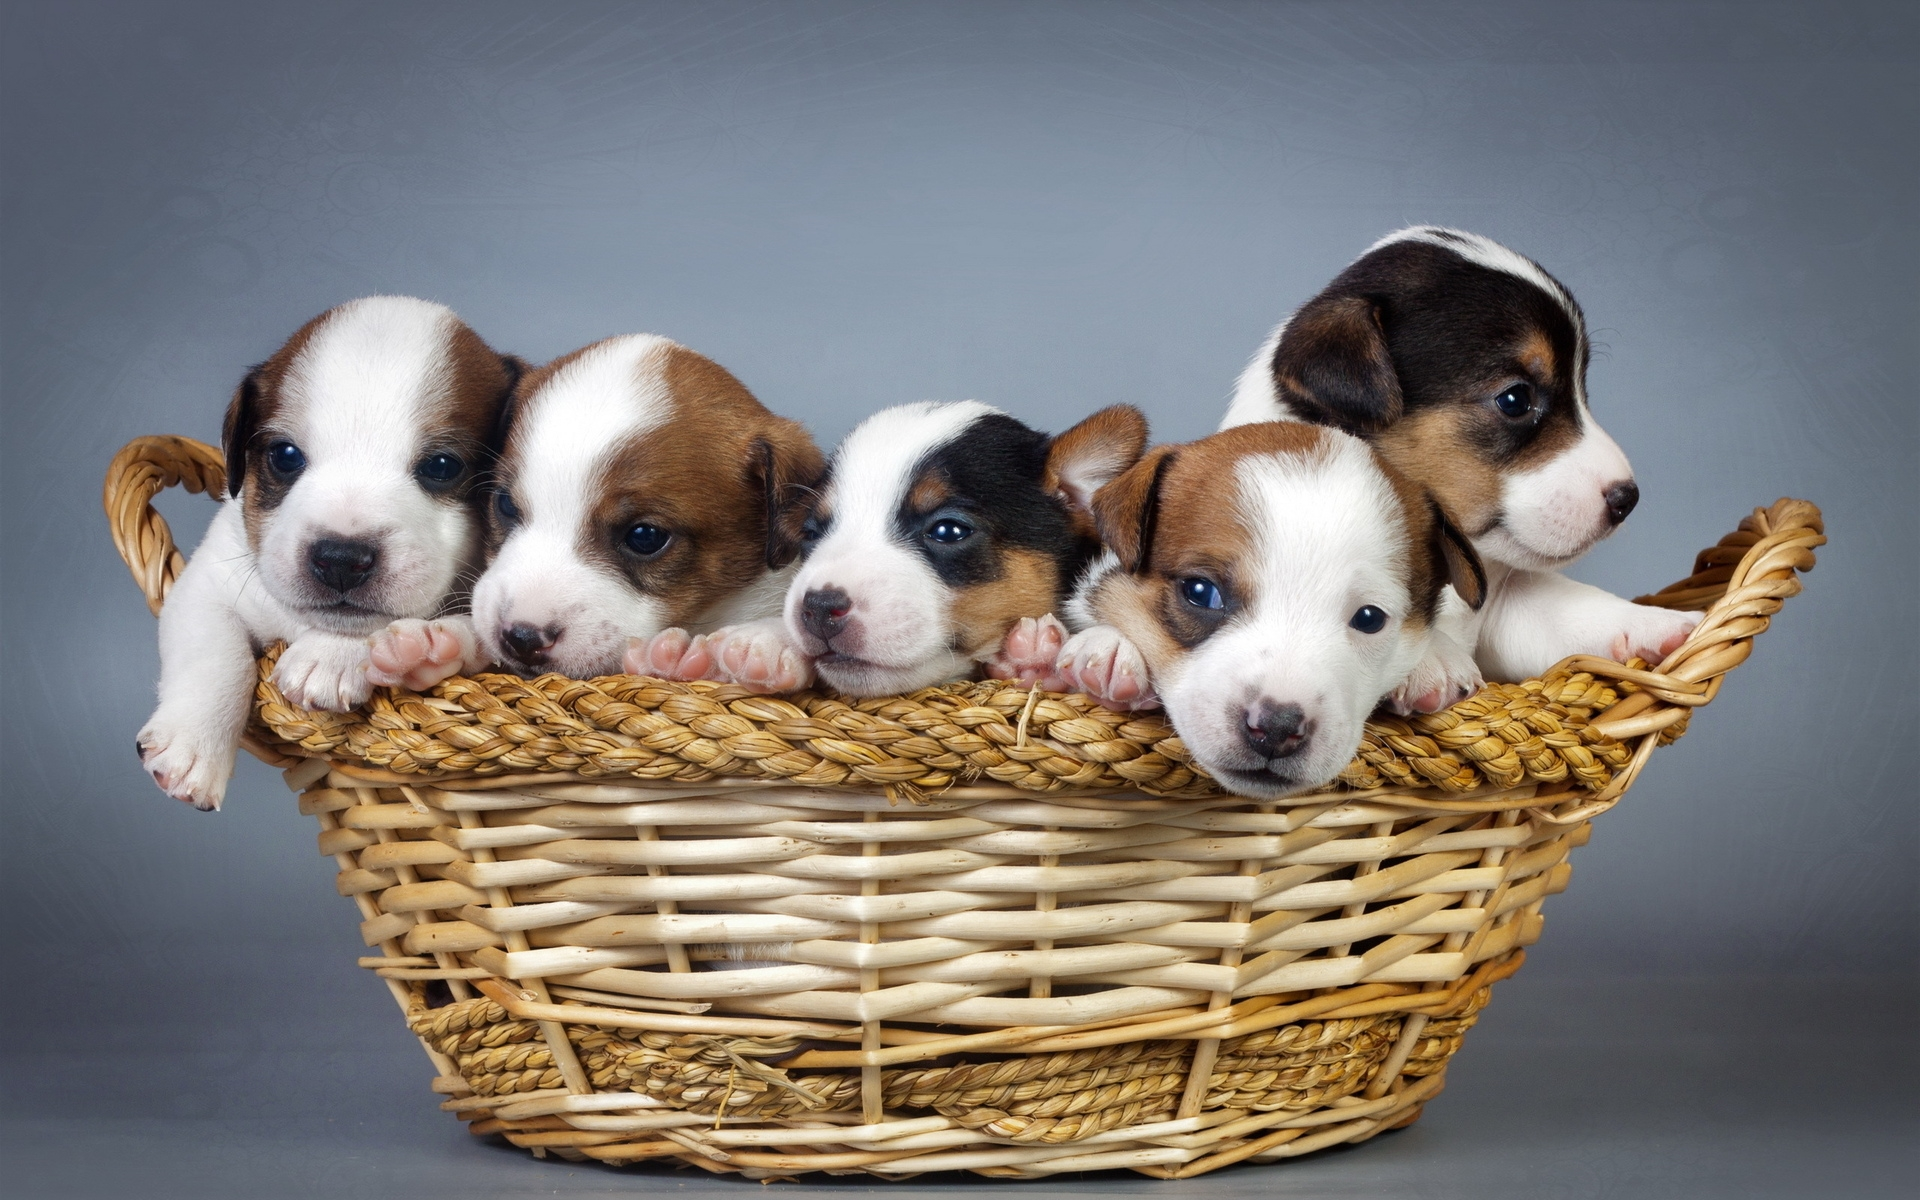 Dogs And Puppies Wallpaper Puppy Full HD Wallpape...